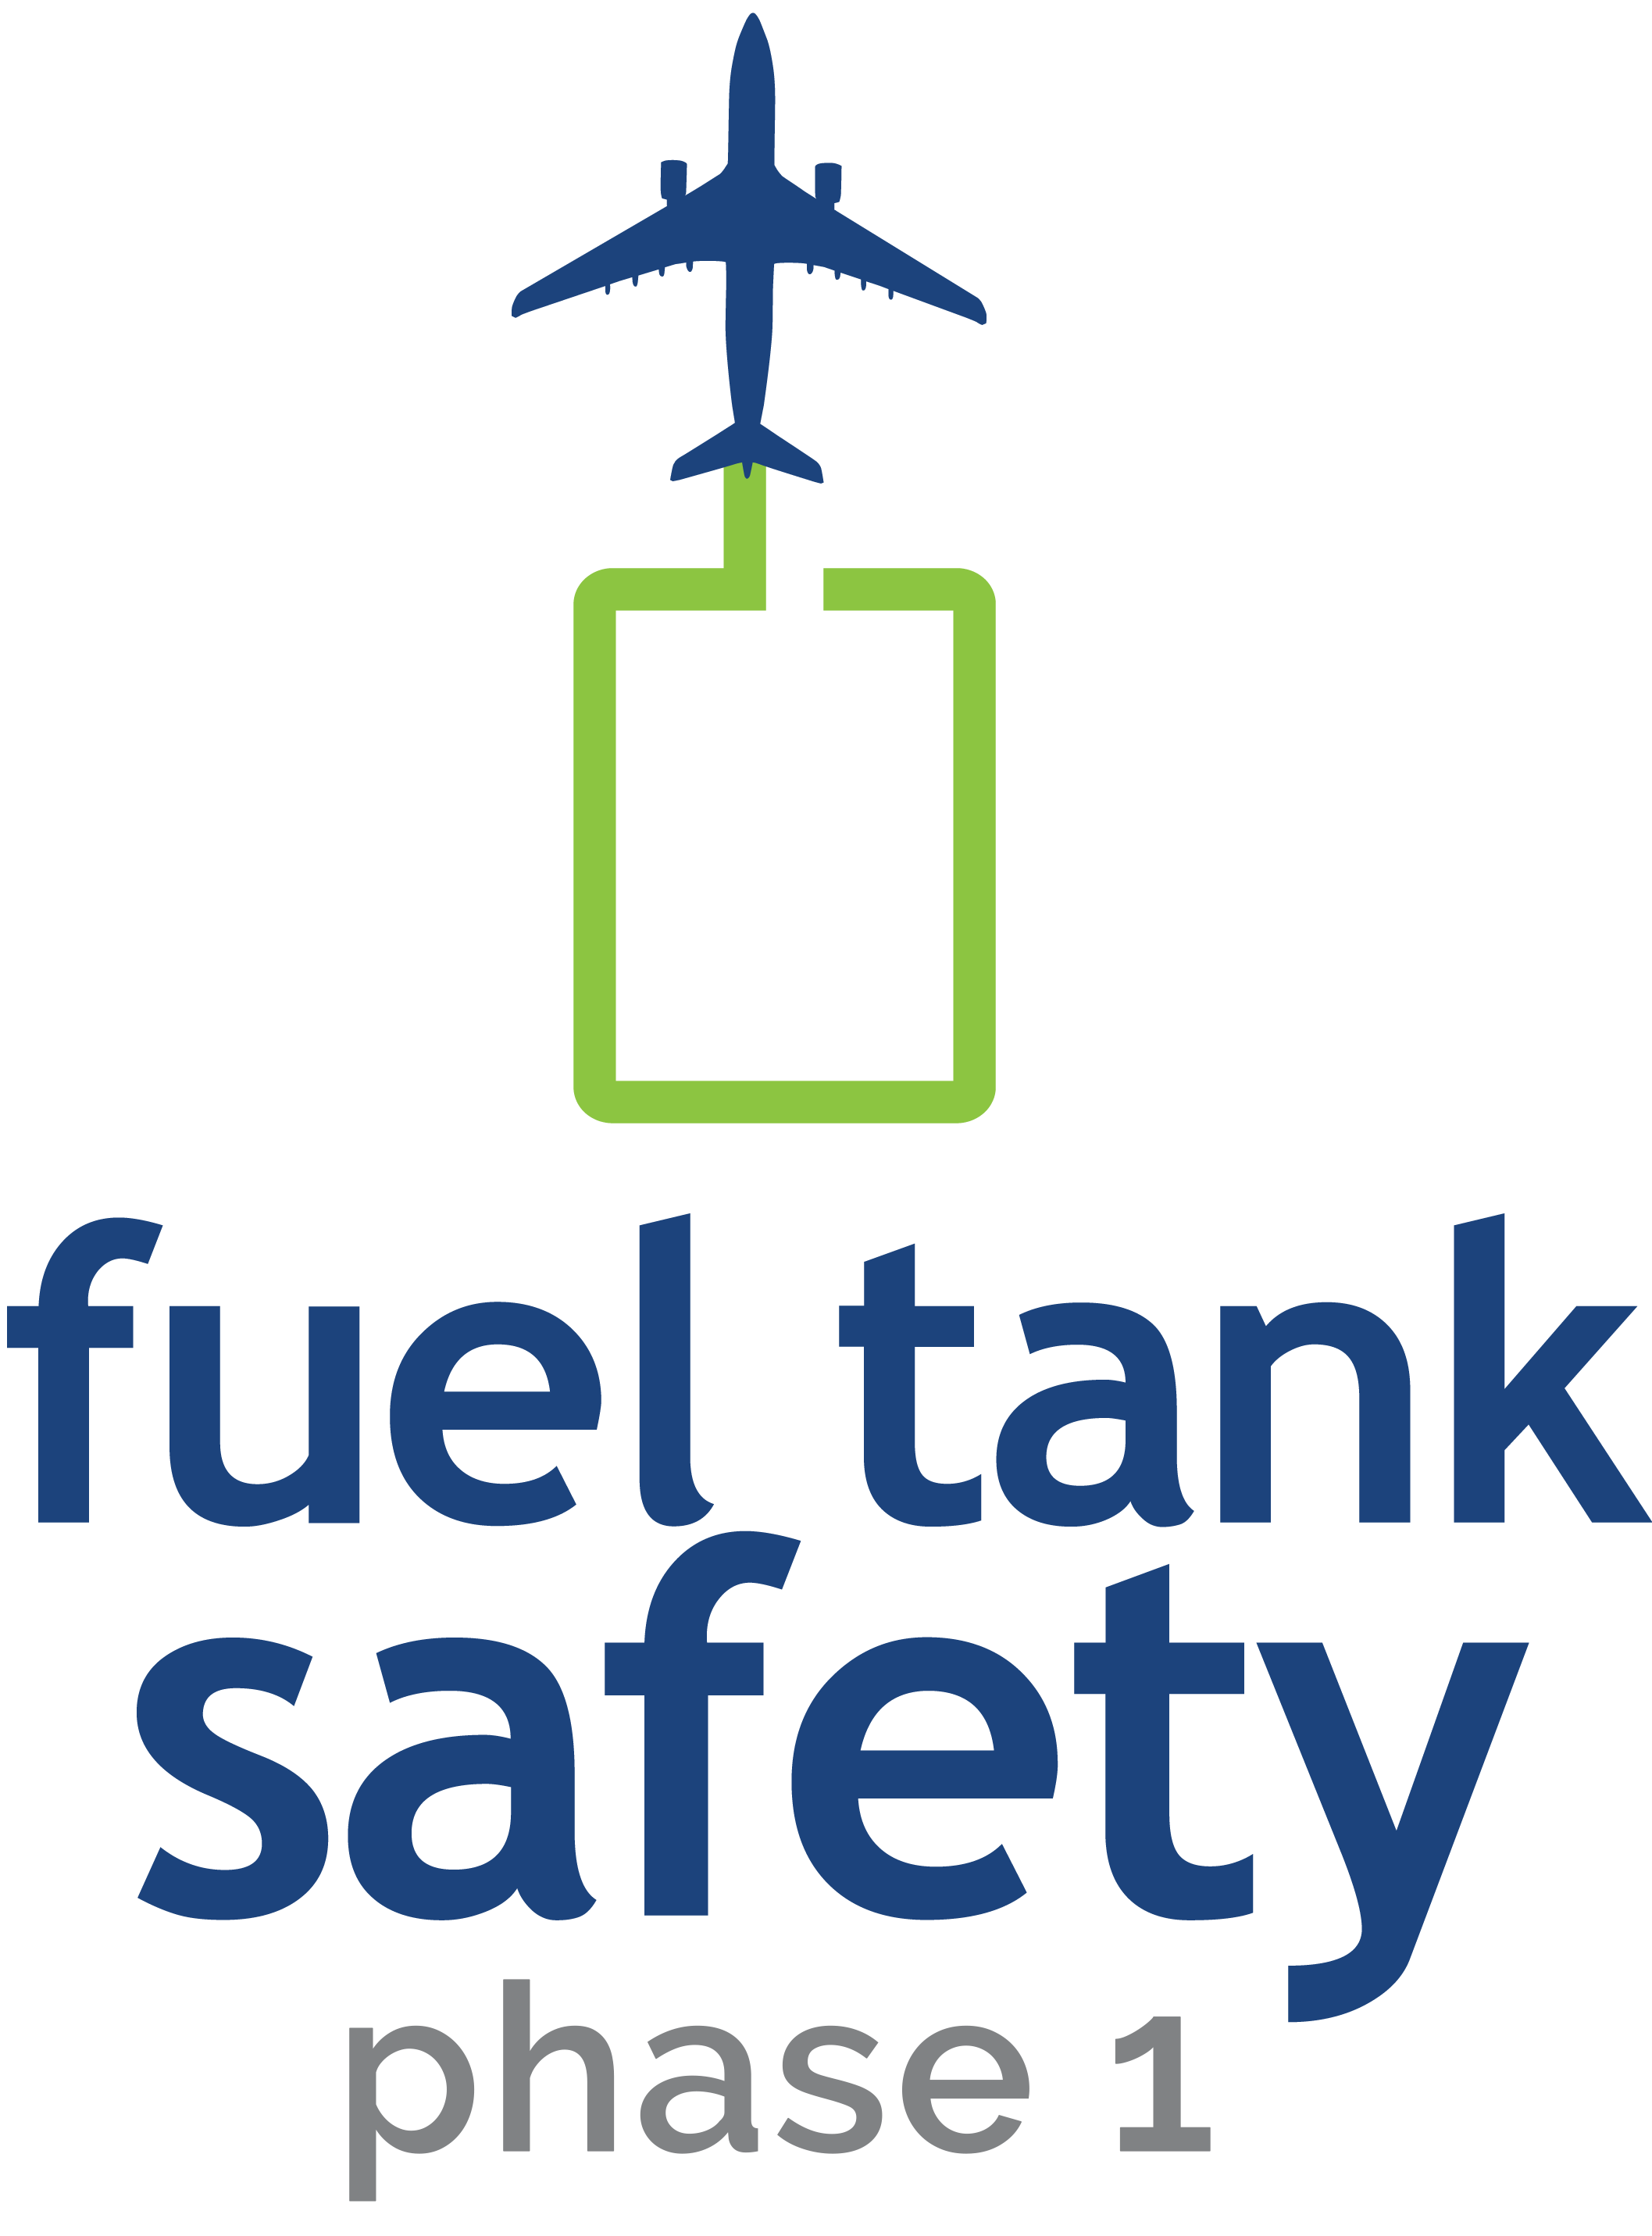 Fuel tank safety (phase 1)